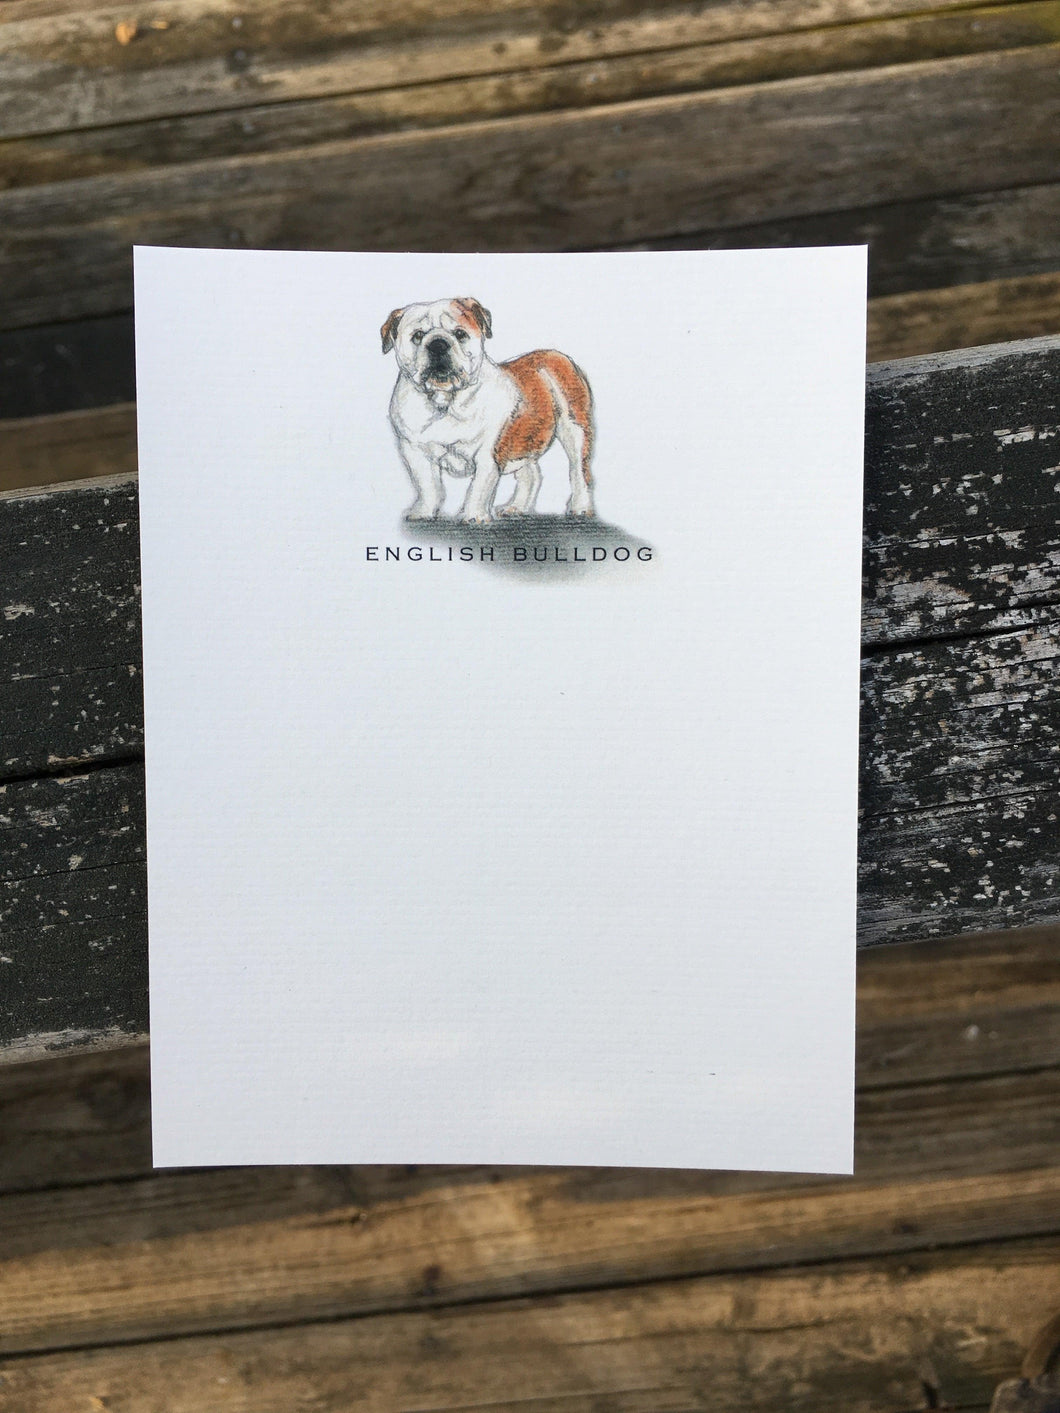 English Bulldog Notecards